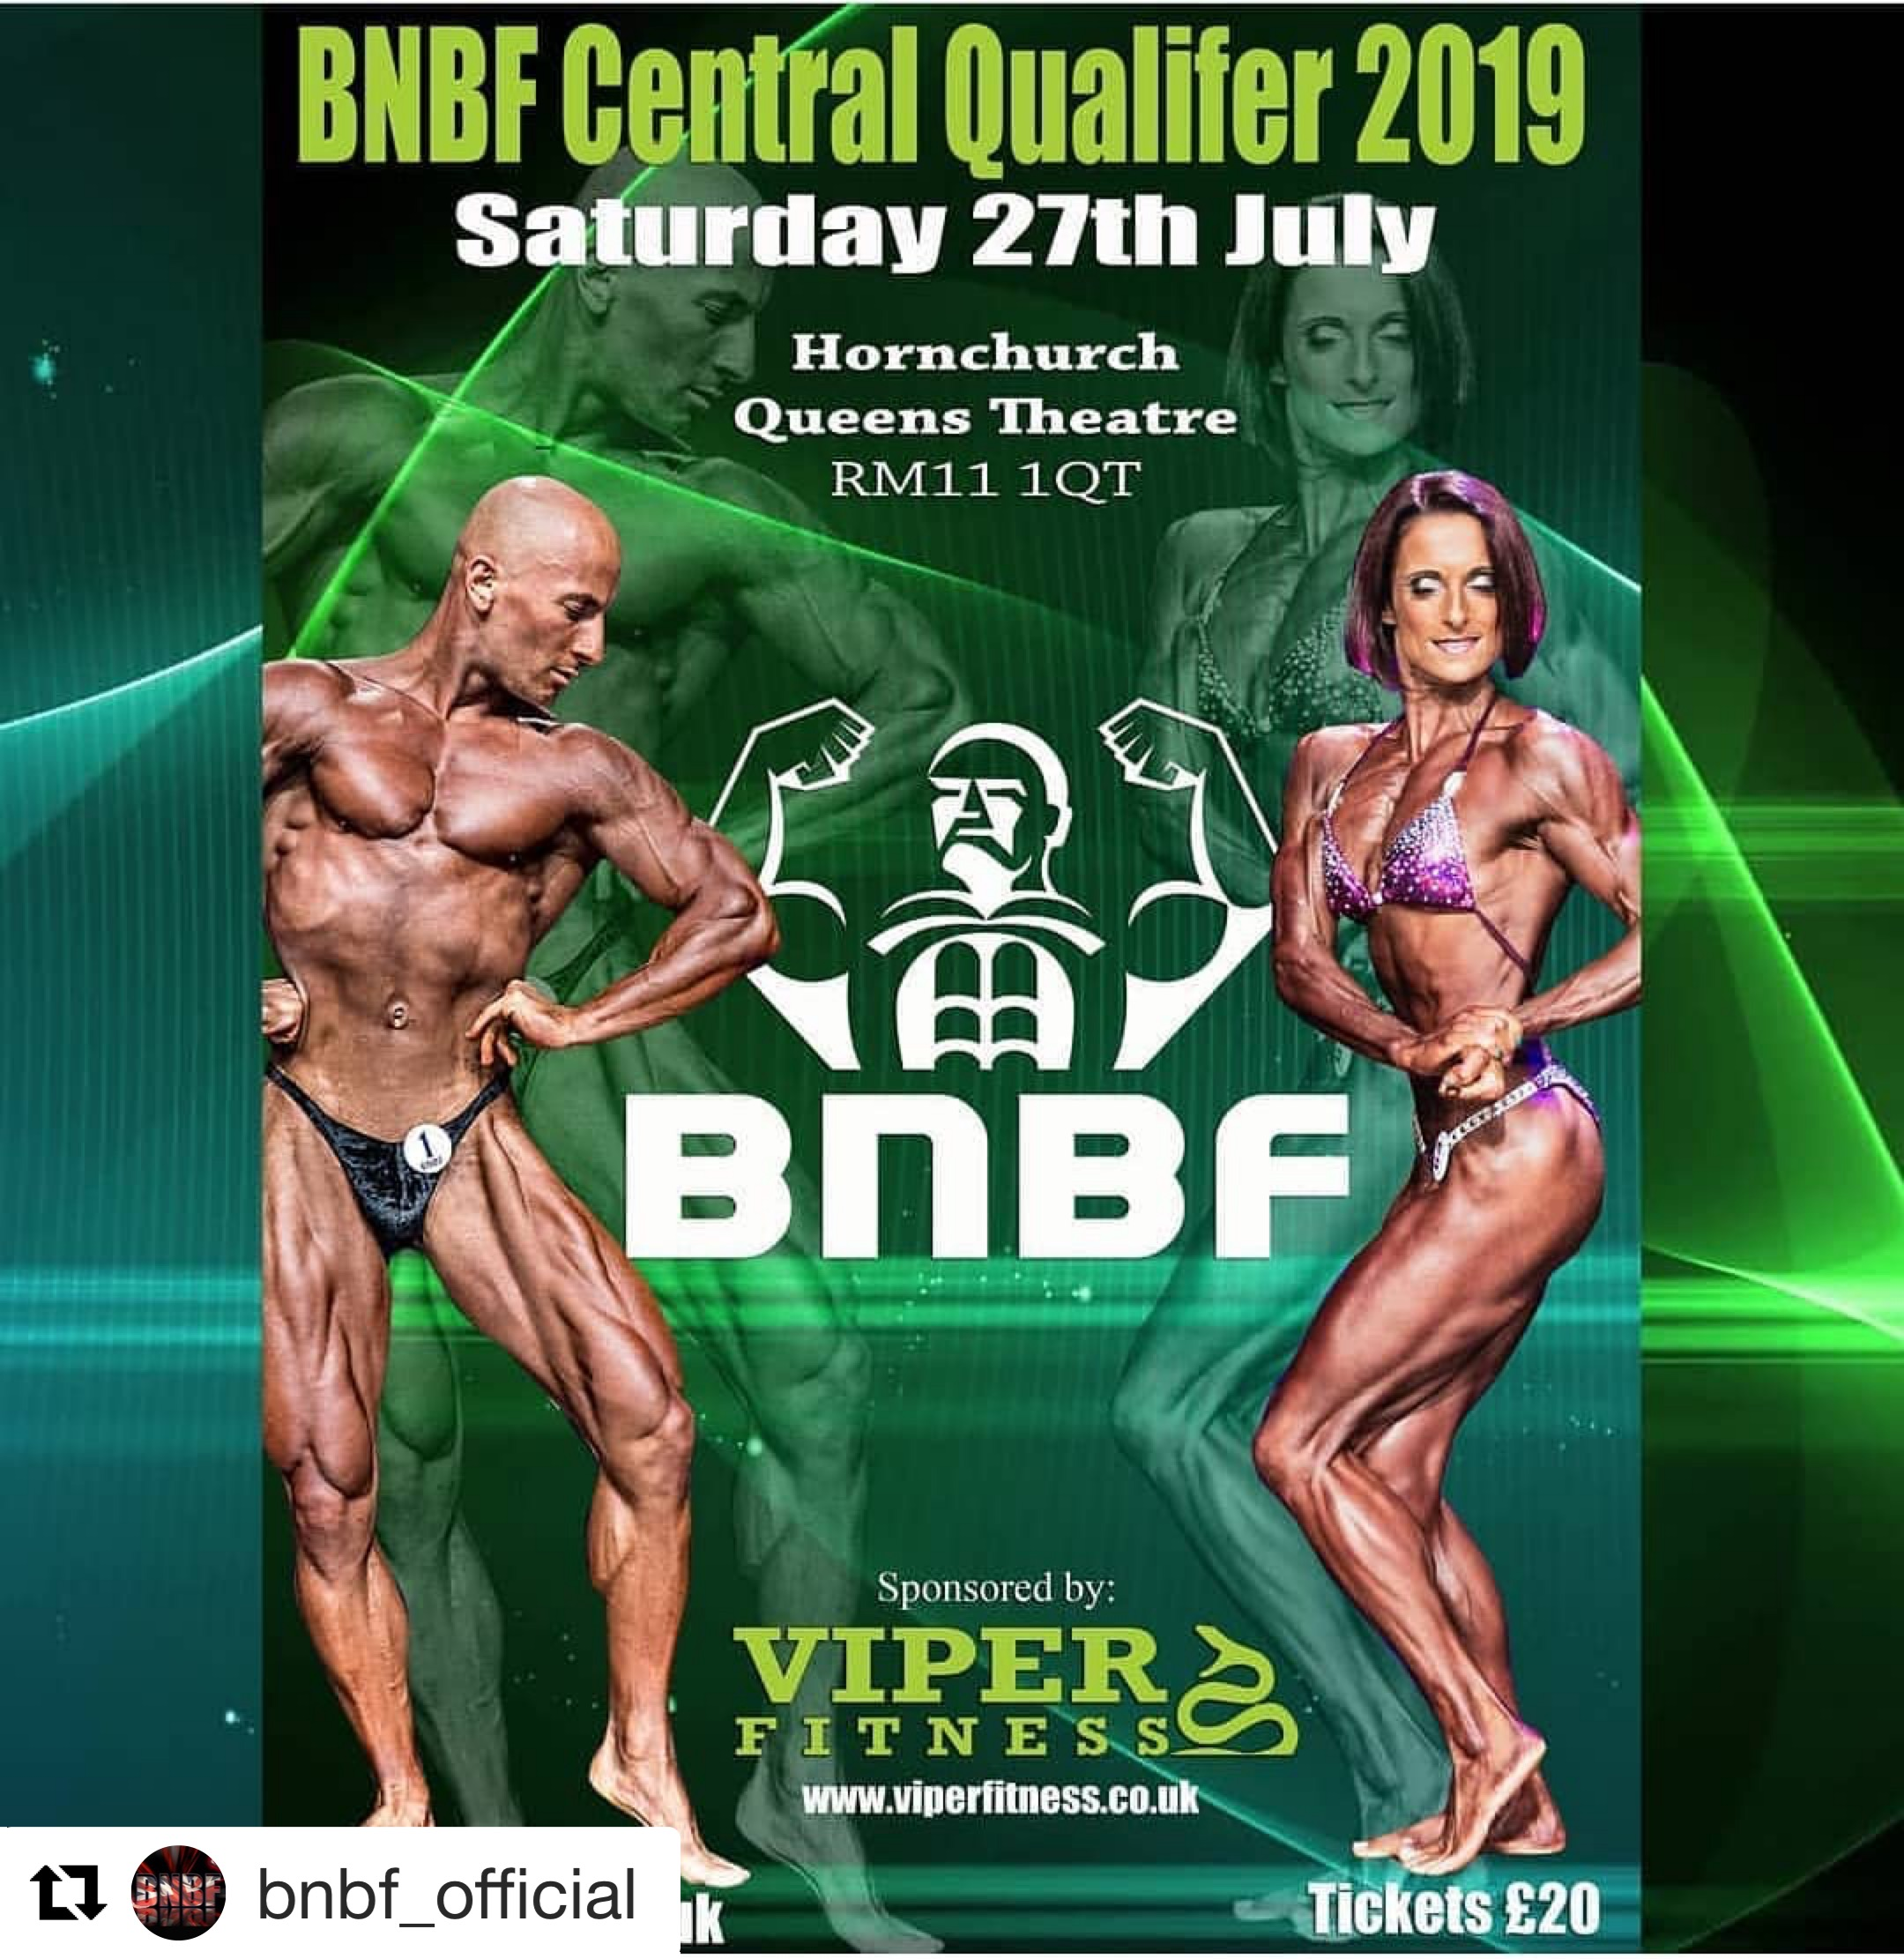 Image of BNBF Centrals